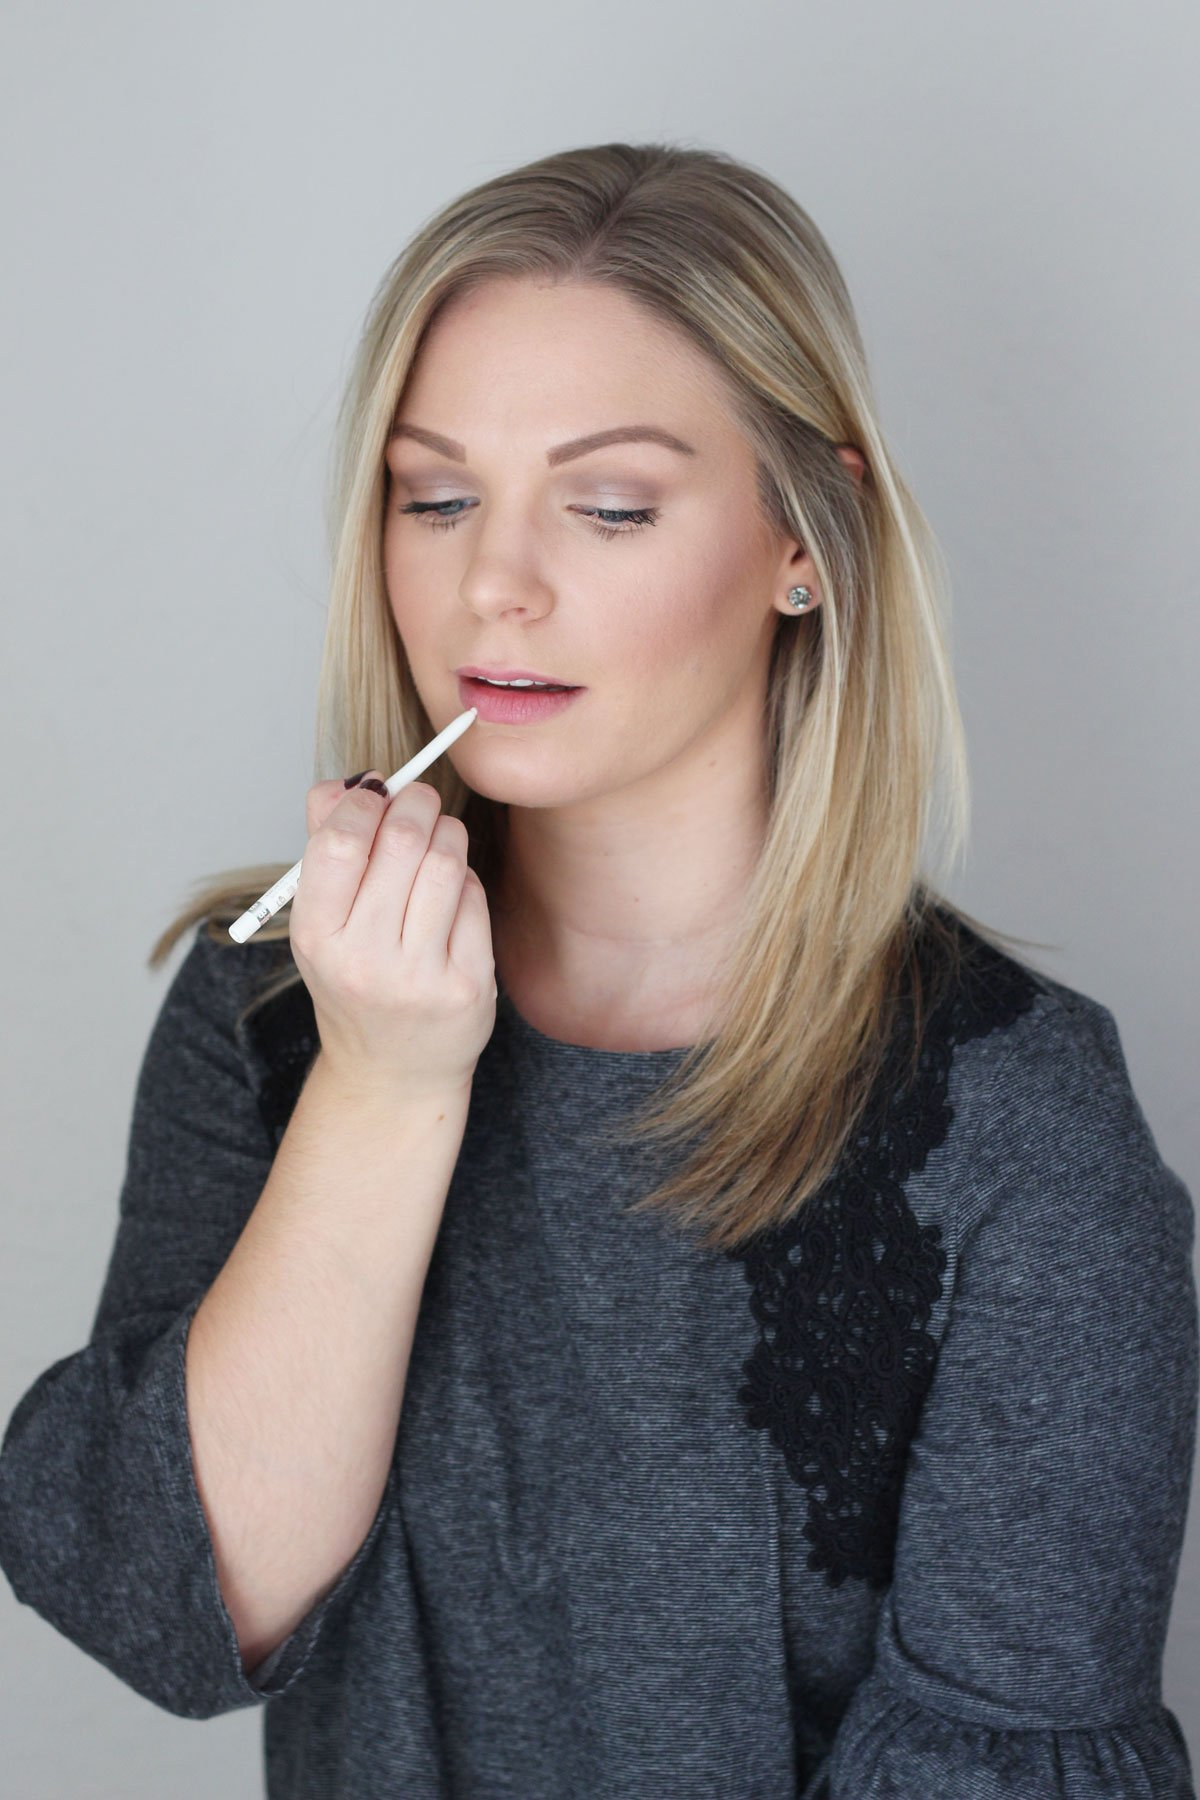 How to Make Your Holiday Lips Last - Rimmel Moisture Renew Universal Transparent Lipliner